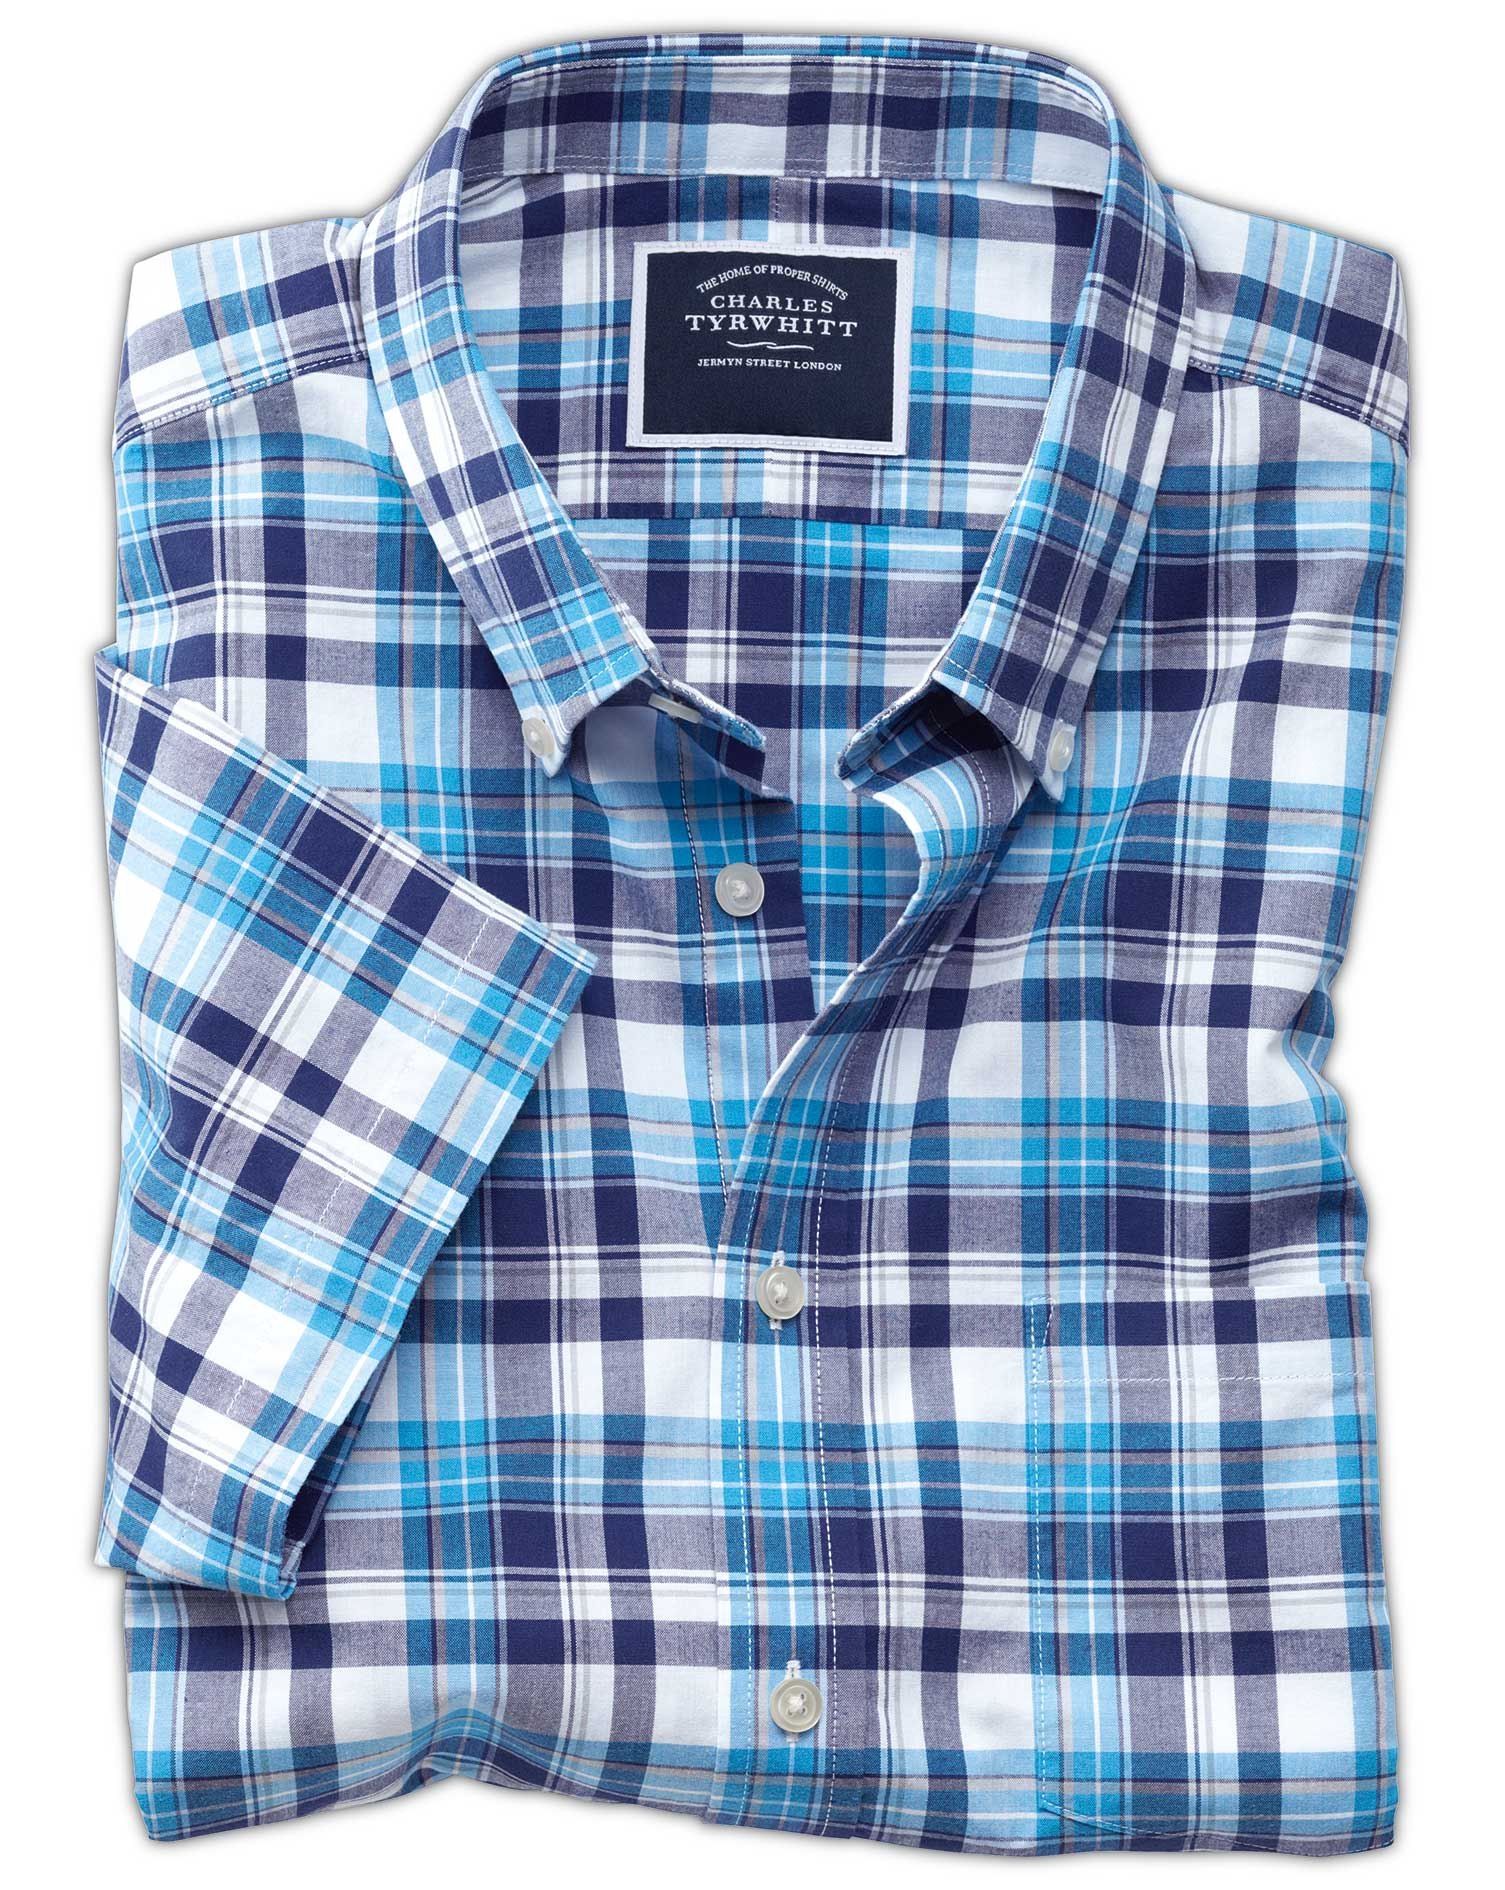 Classic Fit Poplin Short Sleeve Navy Multi Cotton Shirt Single Cuff Size XXXL by Charles Tyrwhitt